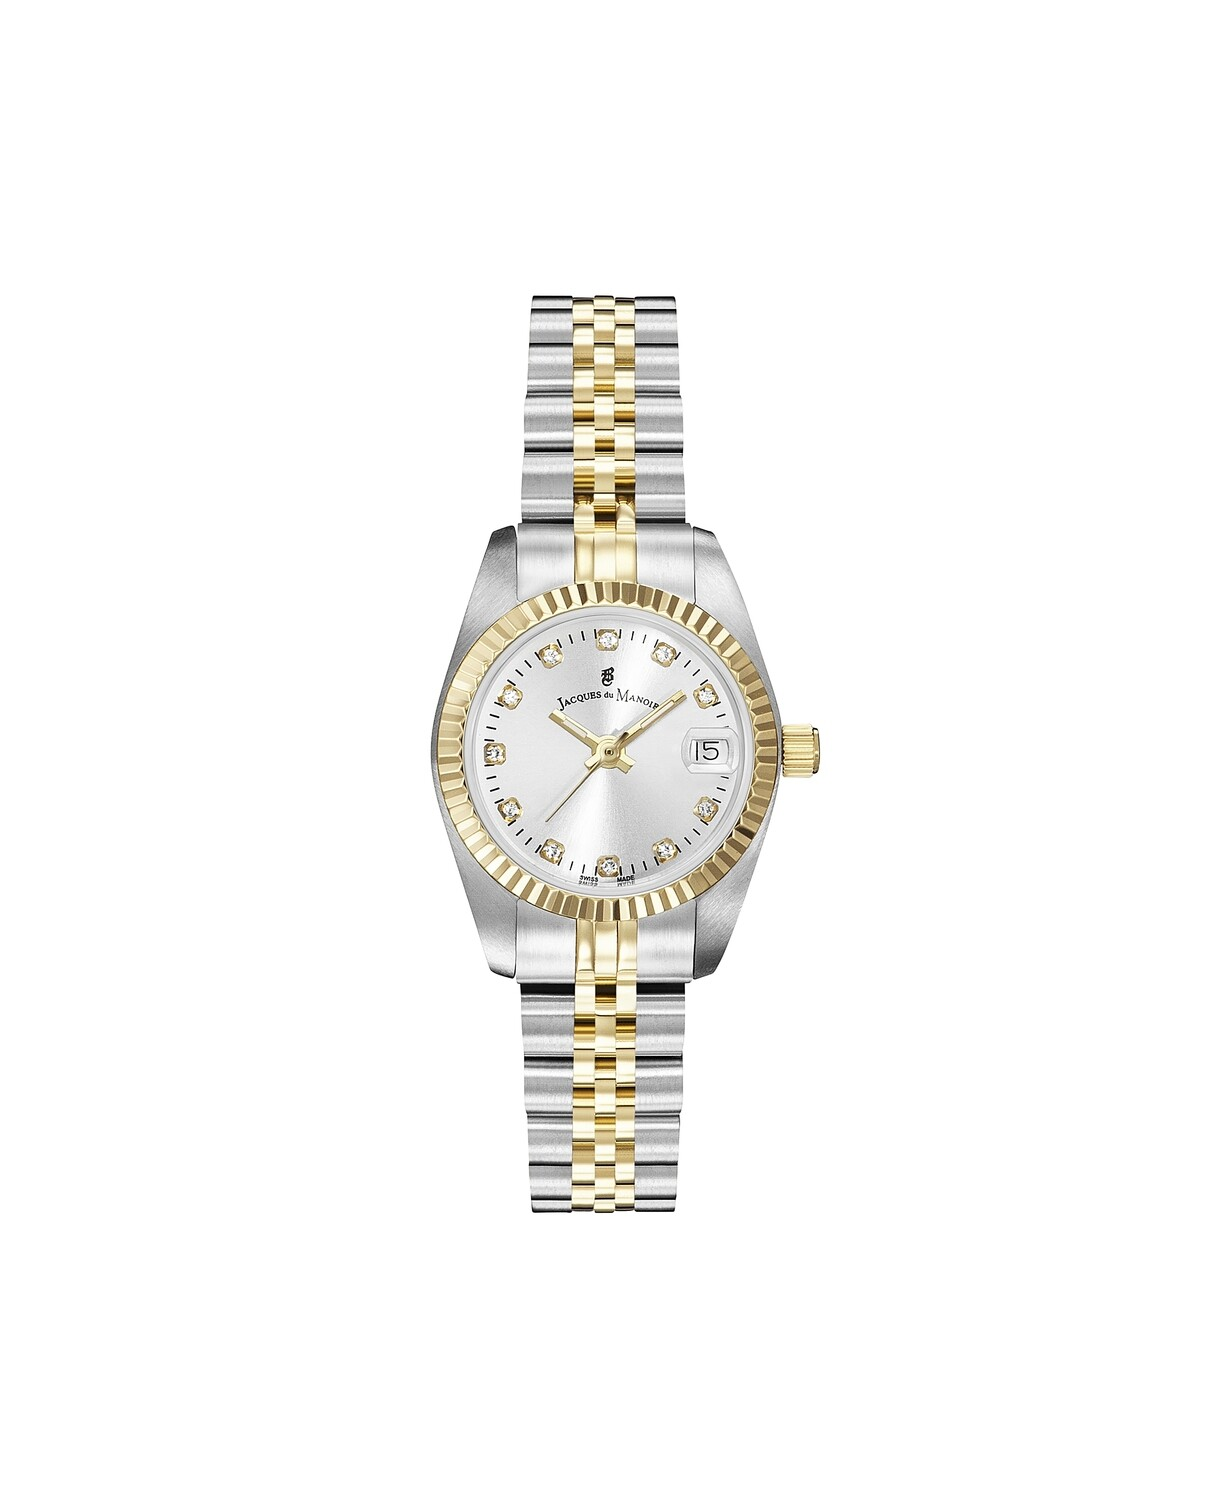 NROP.08] Inspiration Inspiration SS IPGold Two Tone case, WHITE Dial, SS IPGold Two Tone Bracelet, 26.0 mm